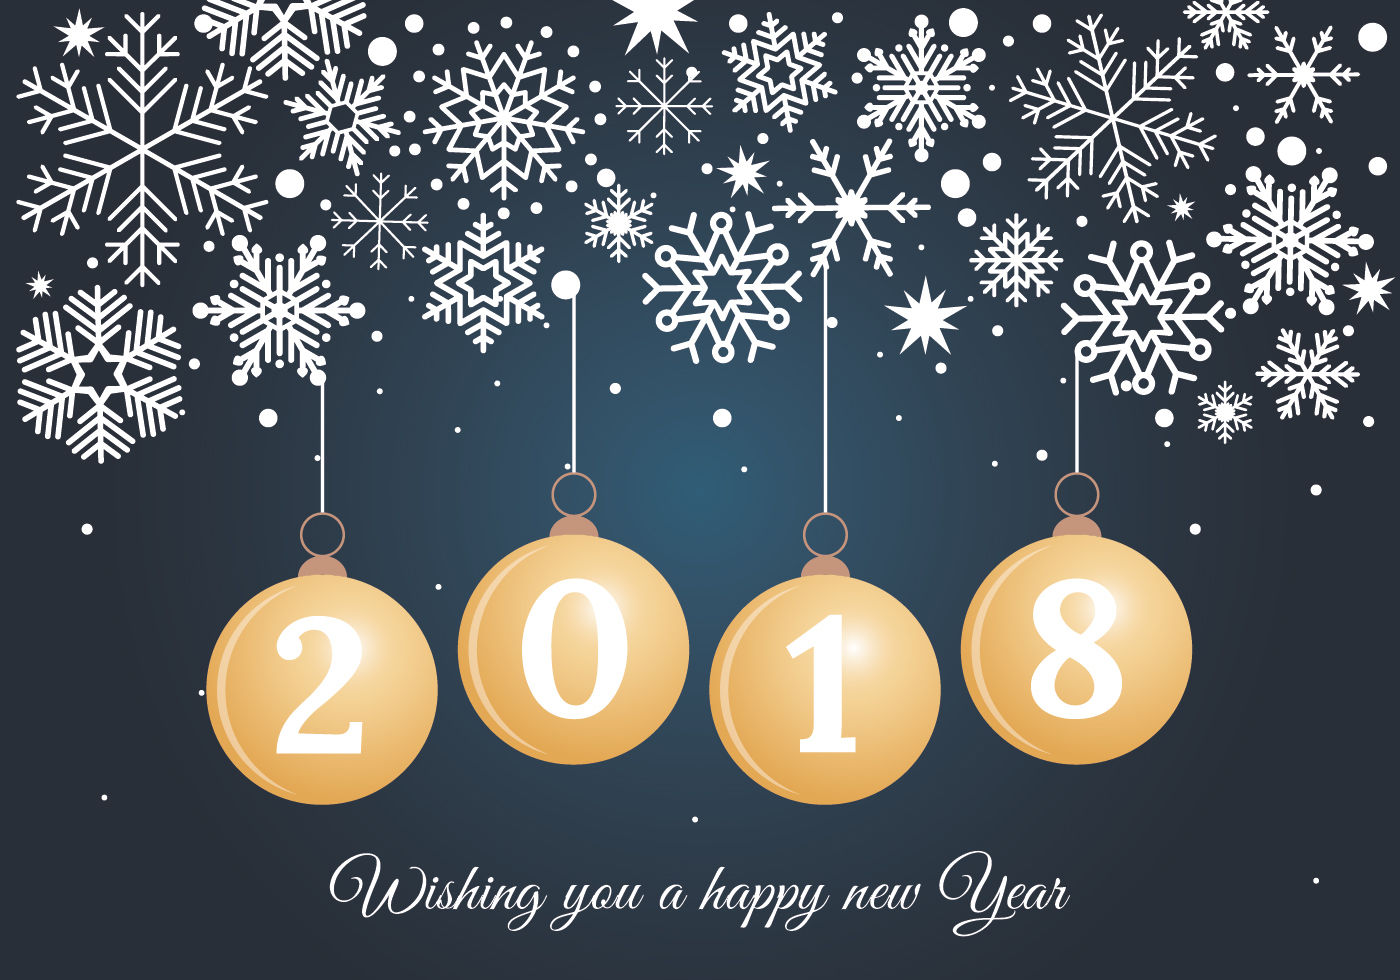 Free Happy New Year Background Elements - Download Free ...